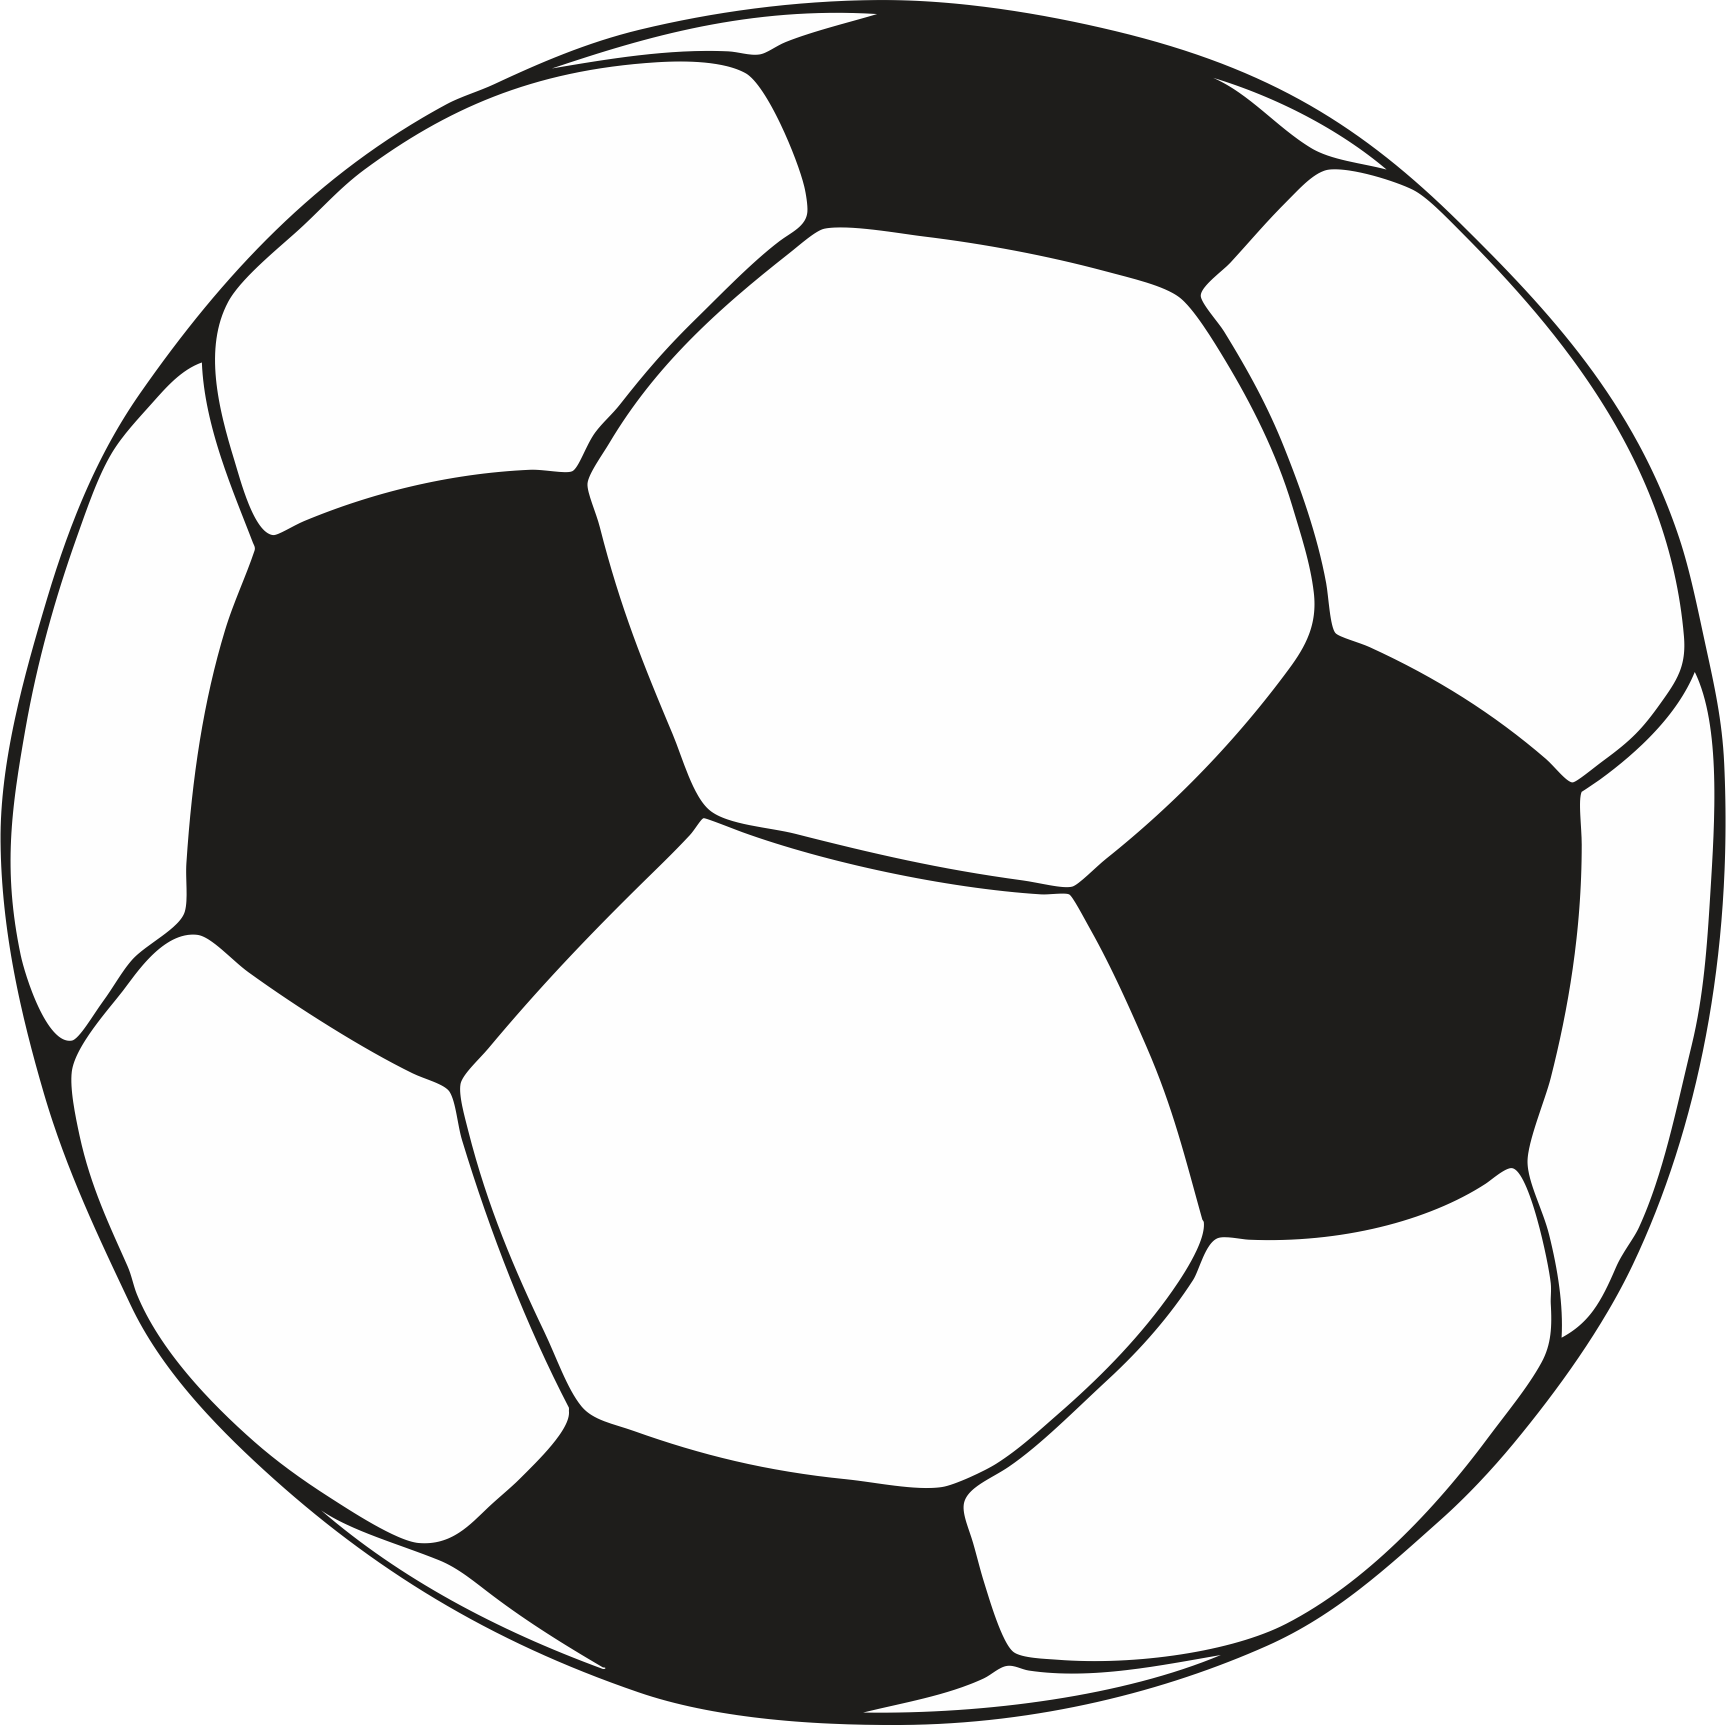 soccer colouring pages soccer ball coloring pages download and print for free colouring pages soccer